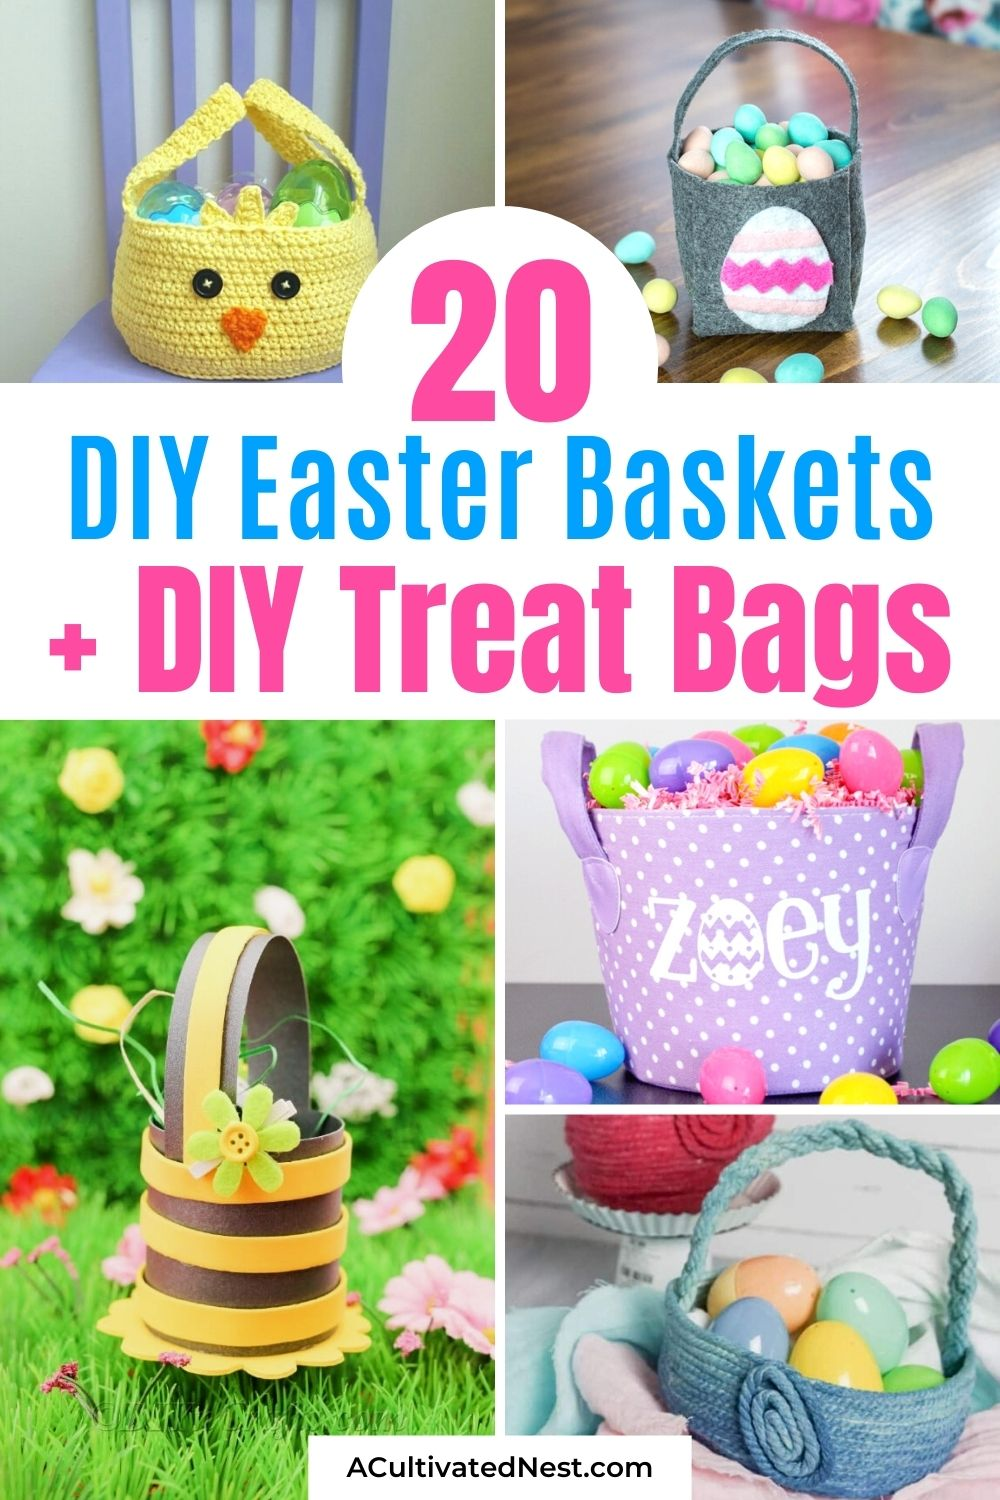 20 DIY Easter Baskets and Treat Bags- This year, make your kids' Easter even more special with some DIY Easter baskets and treat bags! There are so many cute possibilities, and they're all so easy to make! | homemade Easter baskets, how to make your own Easter treat bags, Easter DIYs, #diyEaster #Easter #EasterBasketDIY #EasterCrafts #ACultivatedNest